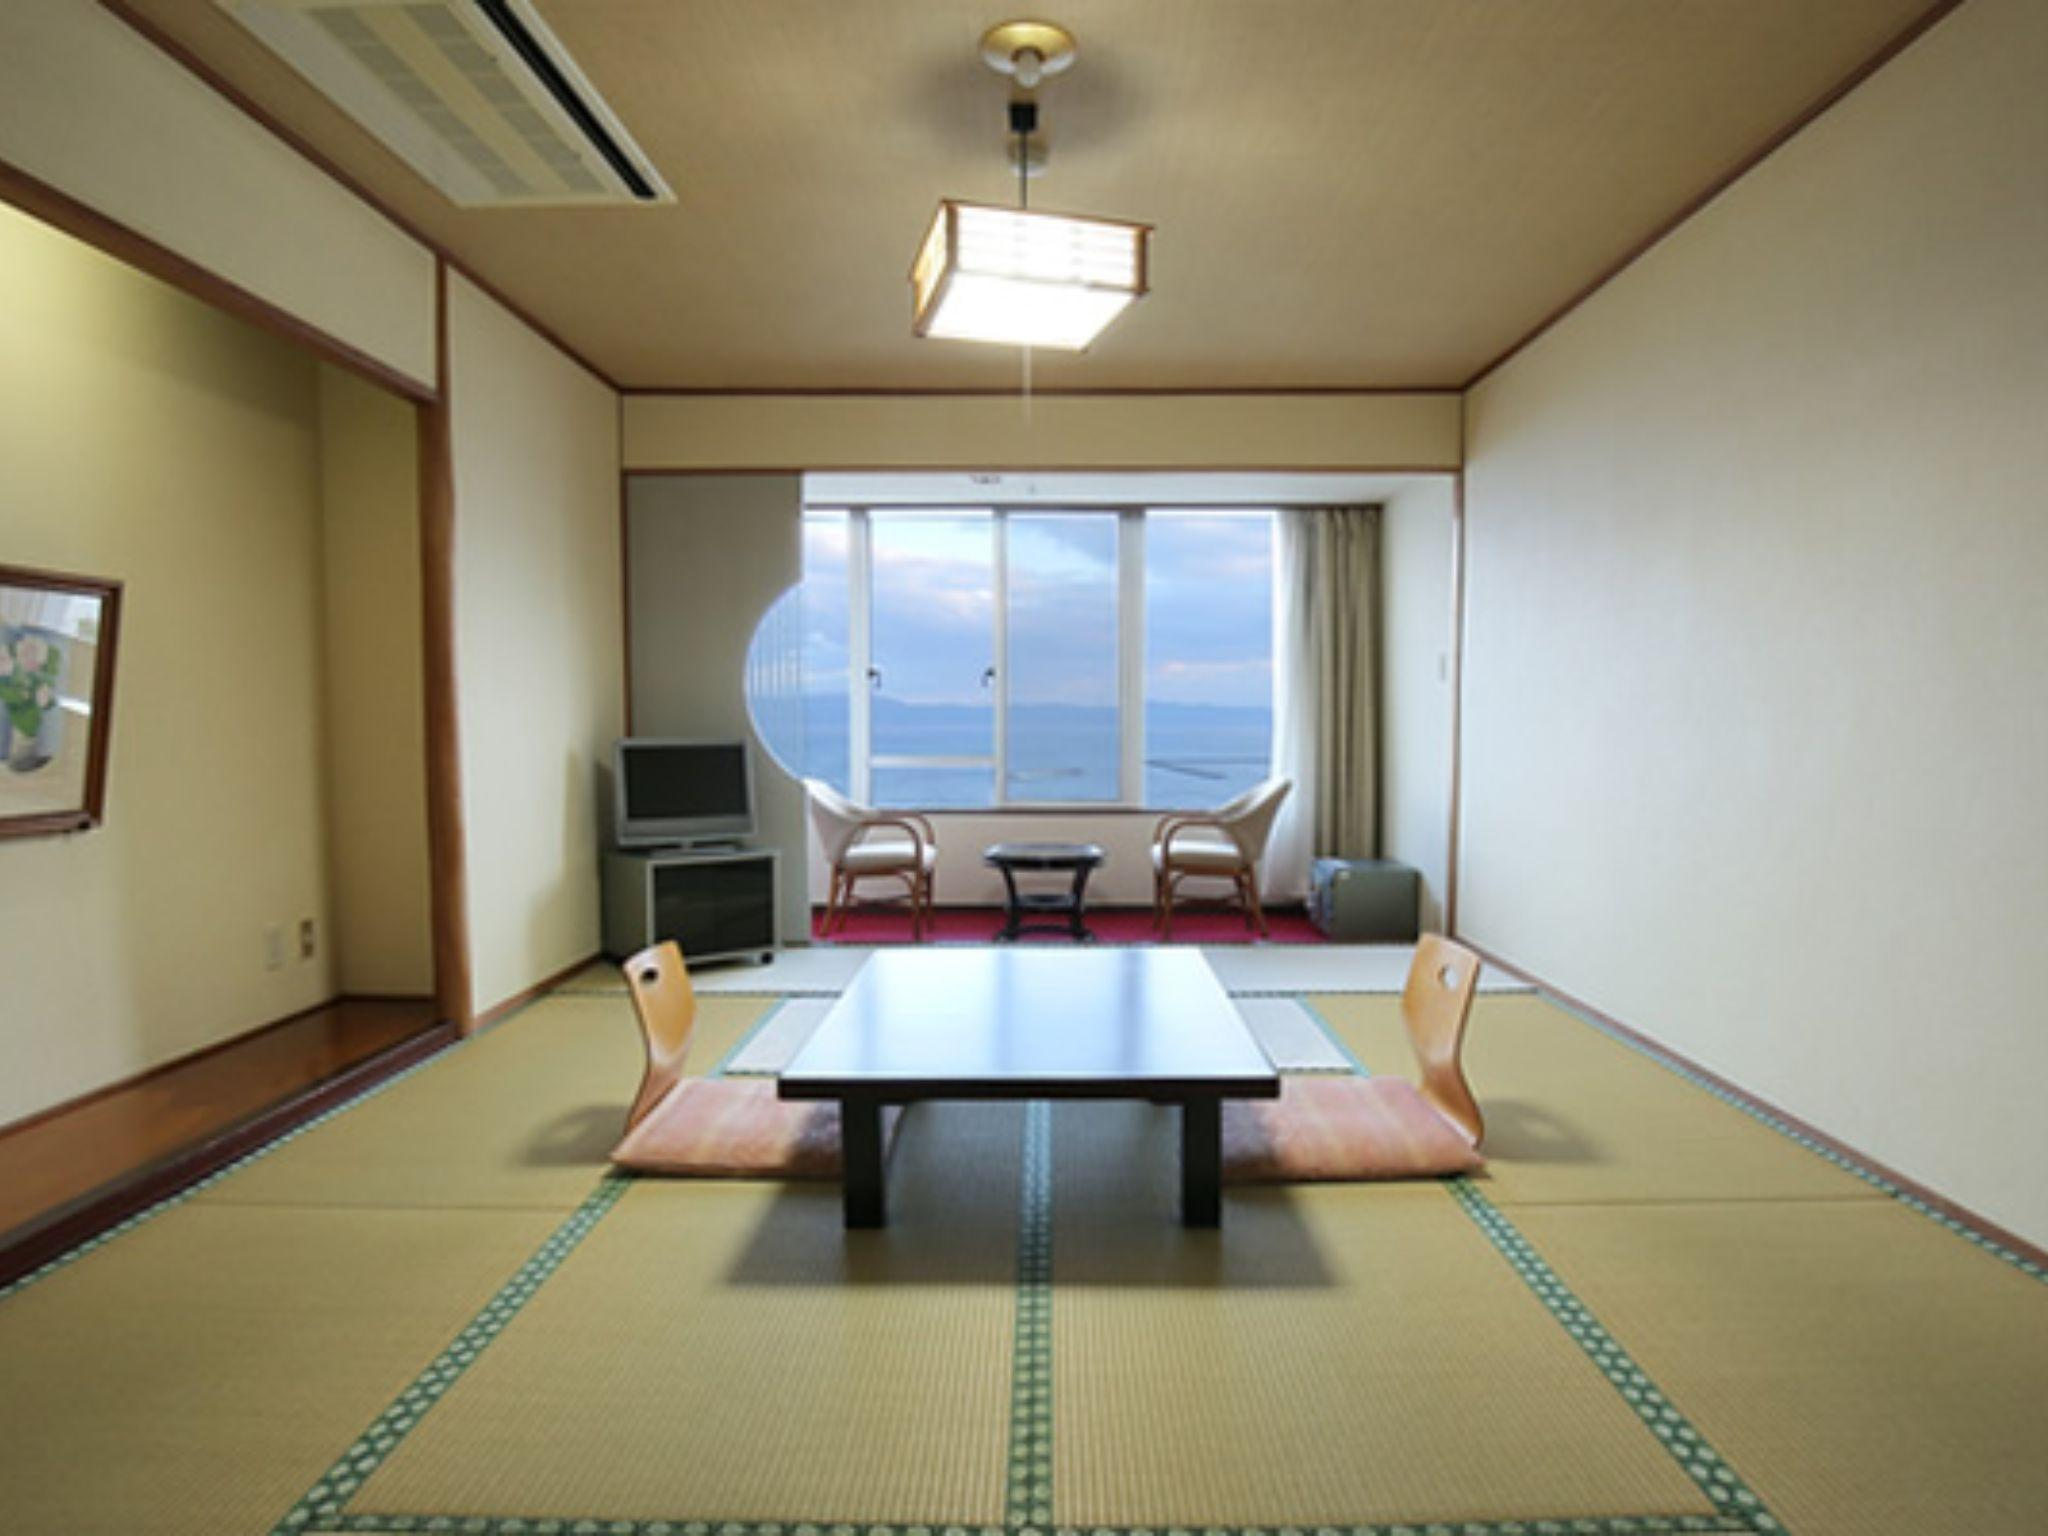 Deluxe Δωμάτιο Ιαπωνικού Στυλ για 4 Άτομα (Deluxe Japanese Style Room for 4 People)